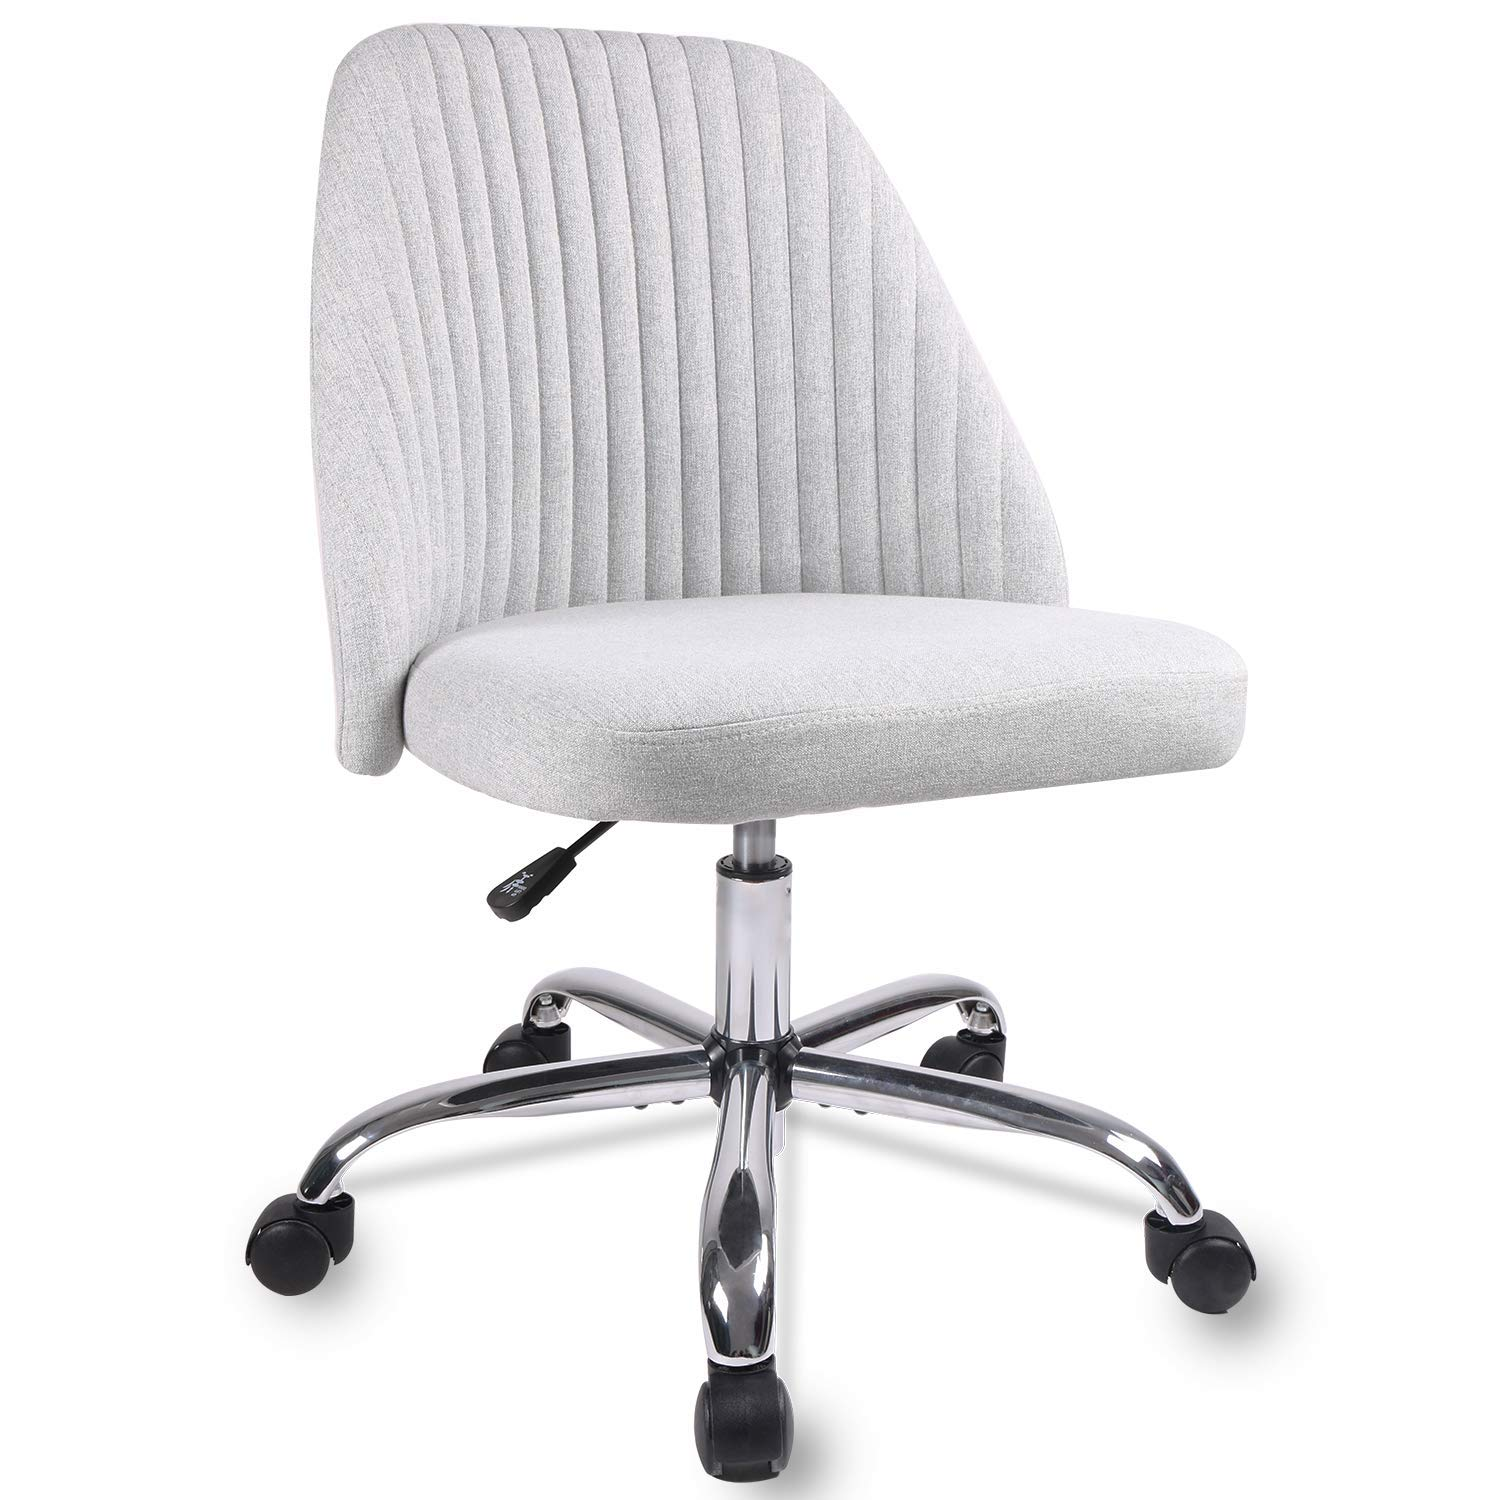 Smugdesk Ergonomic Adjustable Home Office Modern Twill Fabric Chair Gr Smugdesk